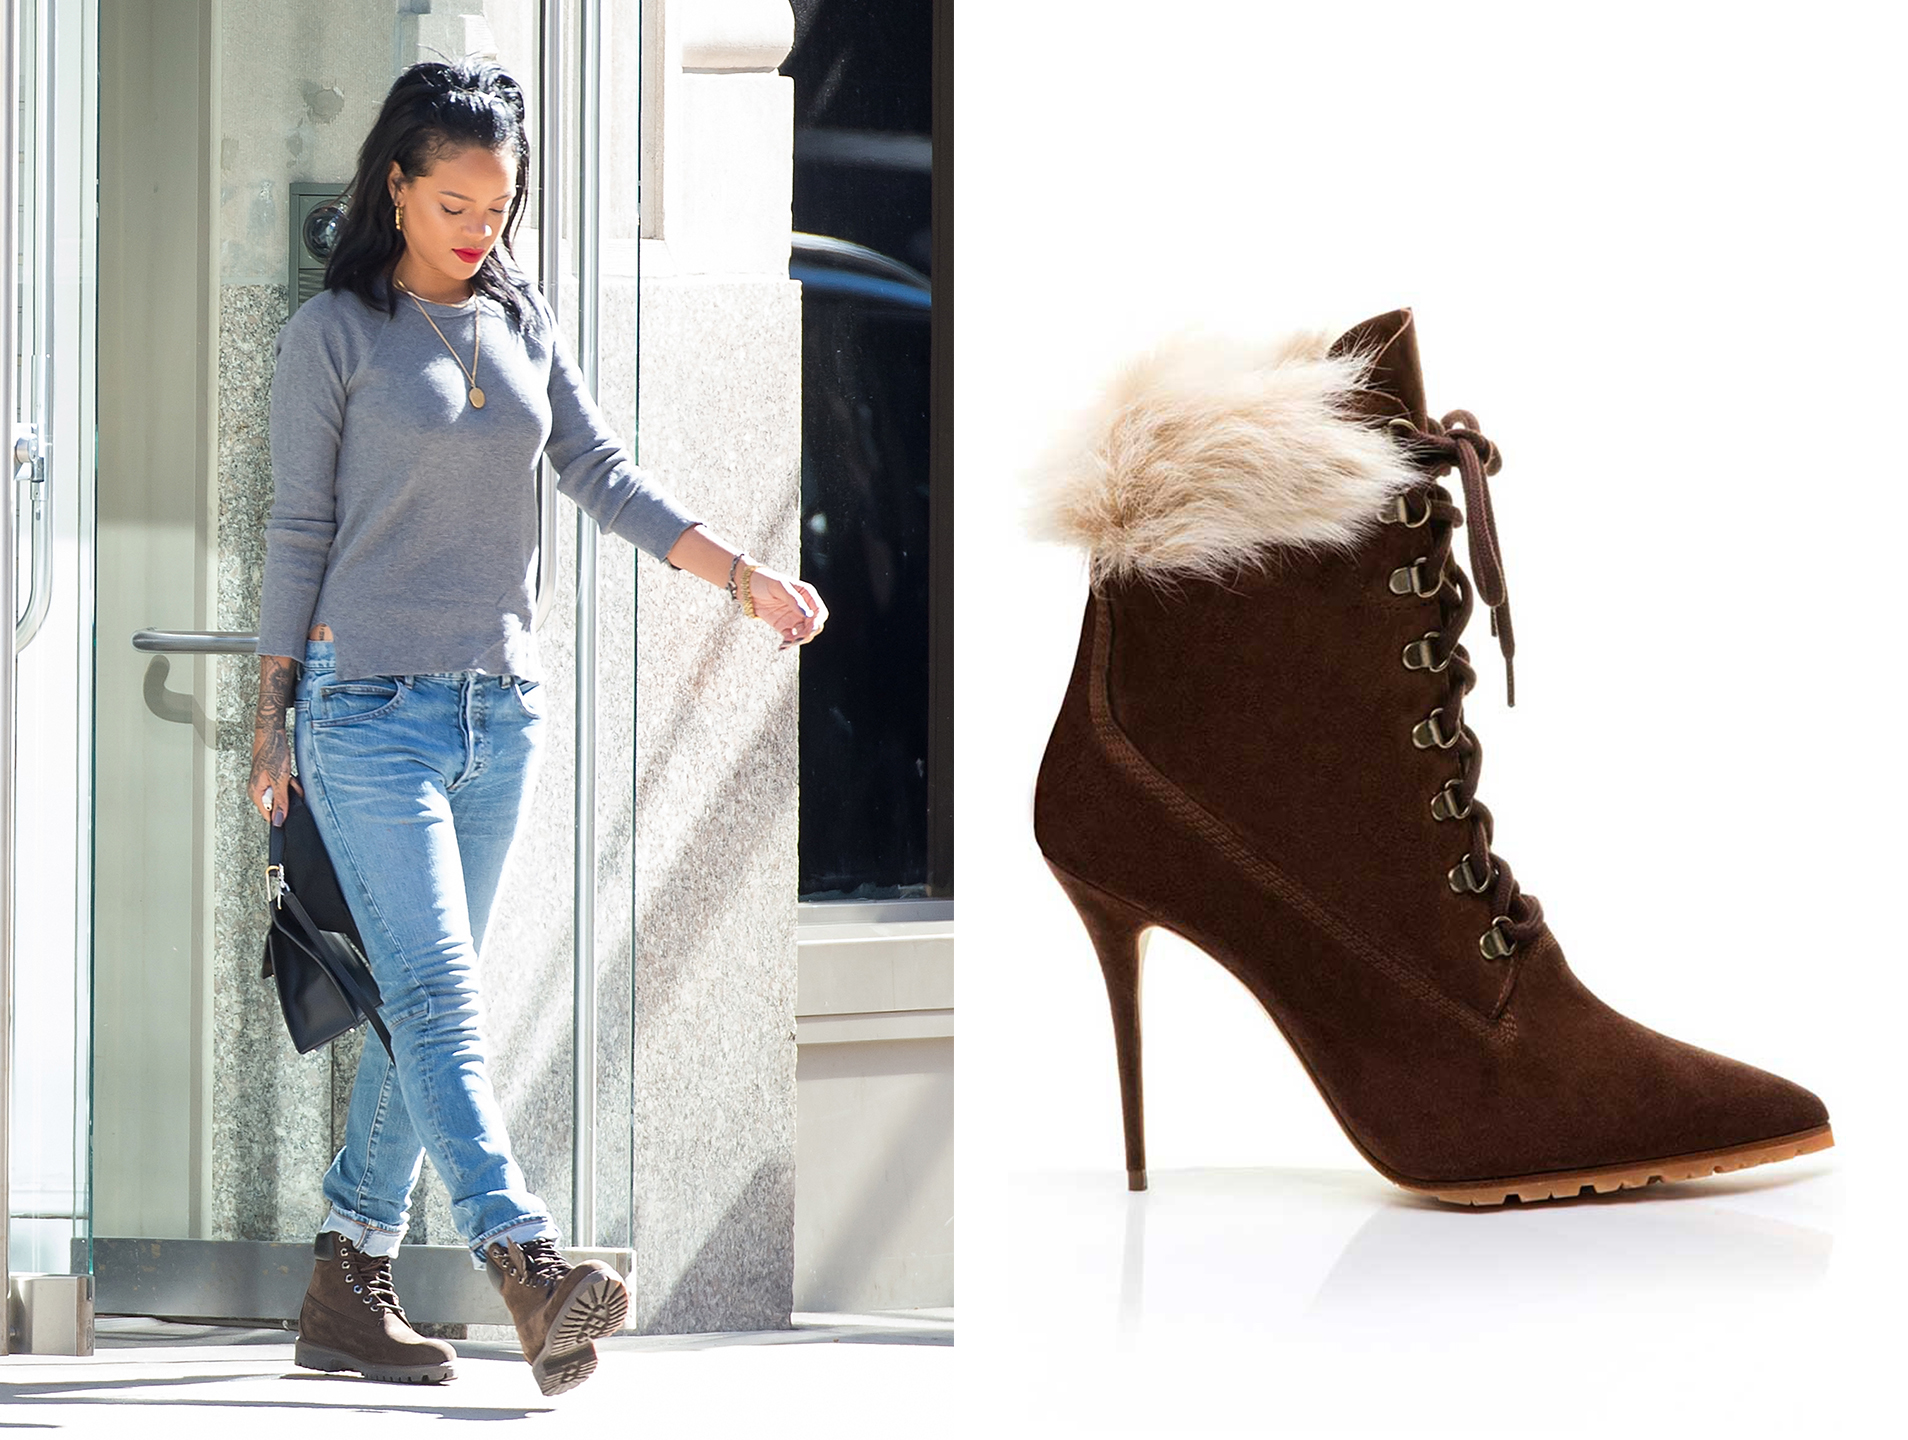 Rihanna X Manolo Blahniks Newest Boot Collection Is An